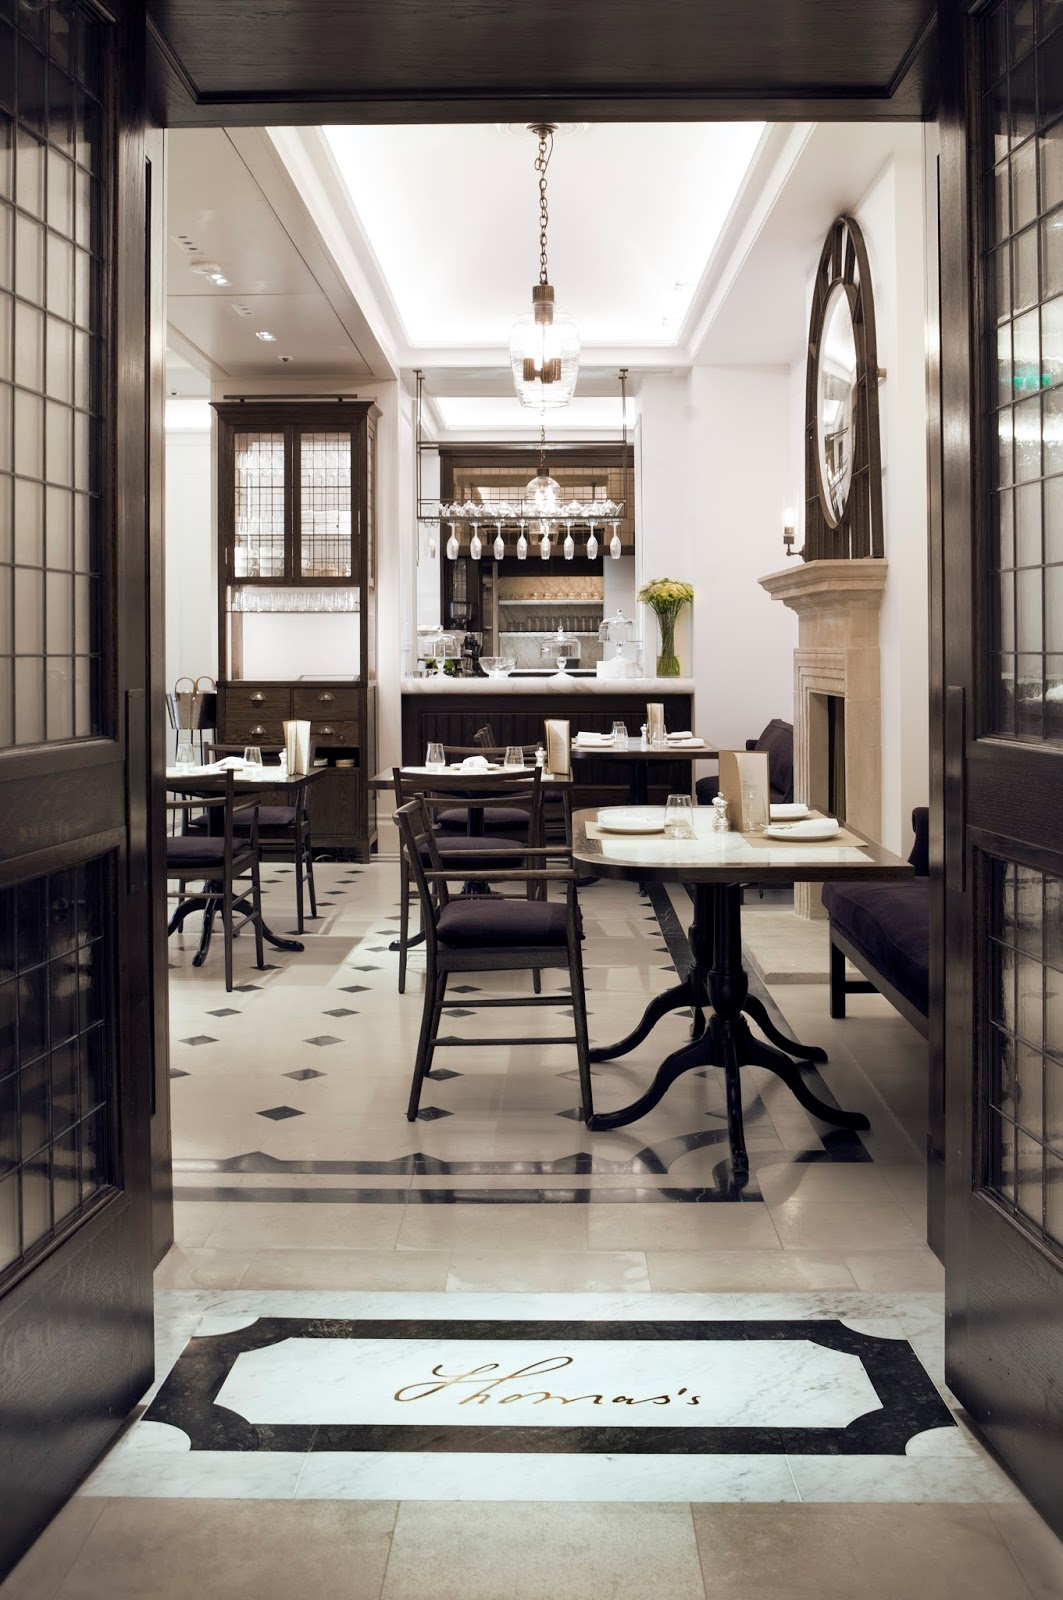 Interior of Thomas's cafe in Burberry Regent Street